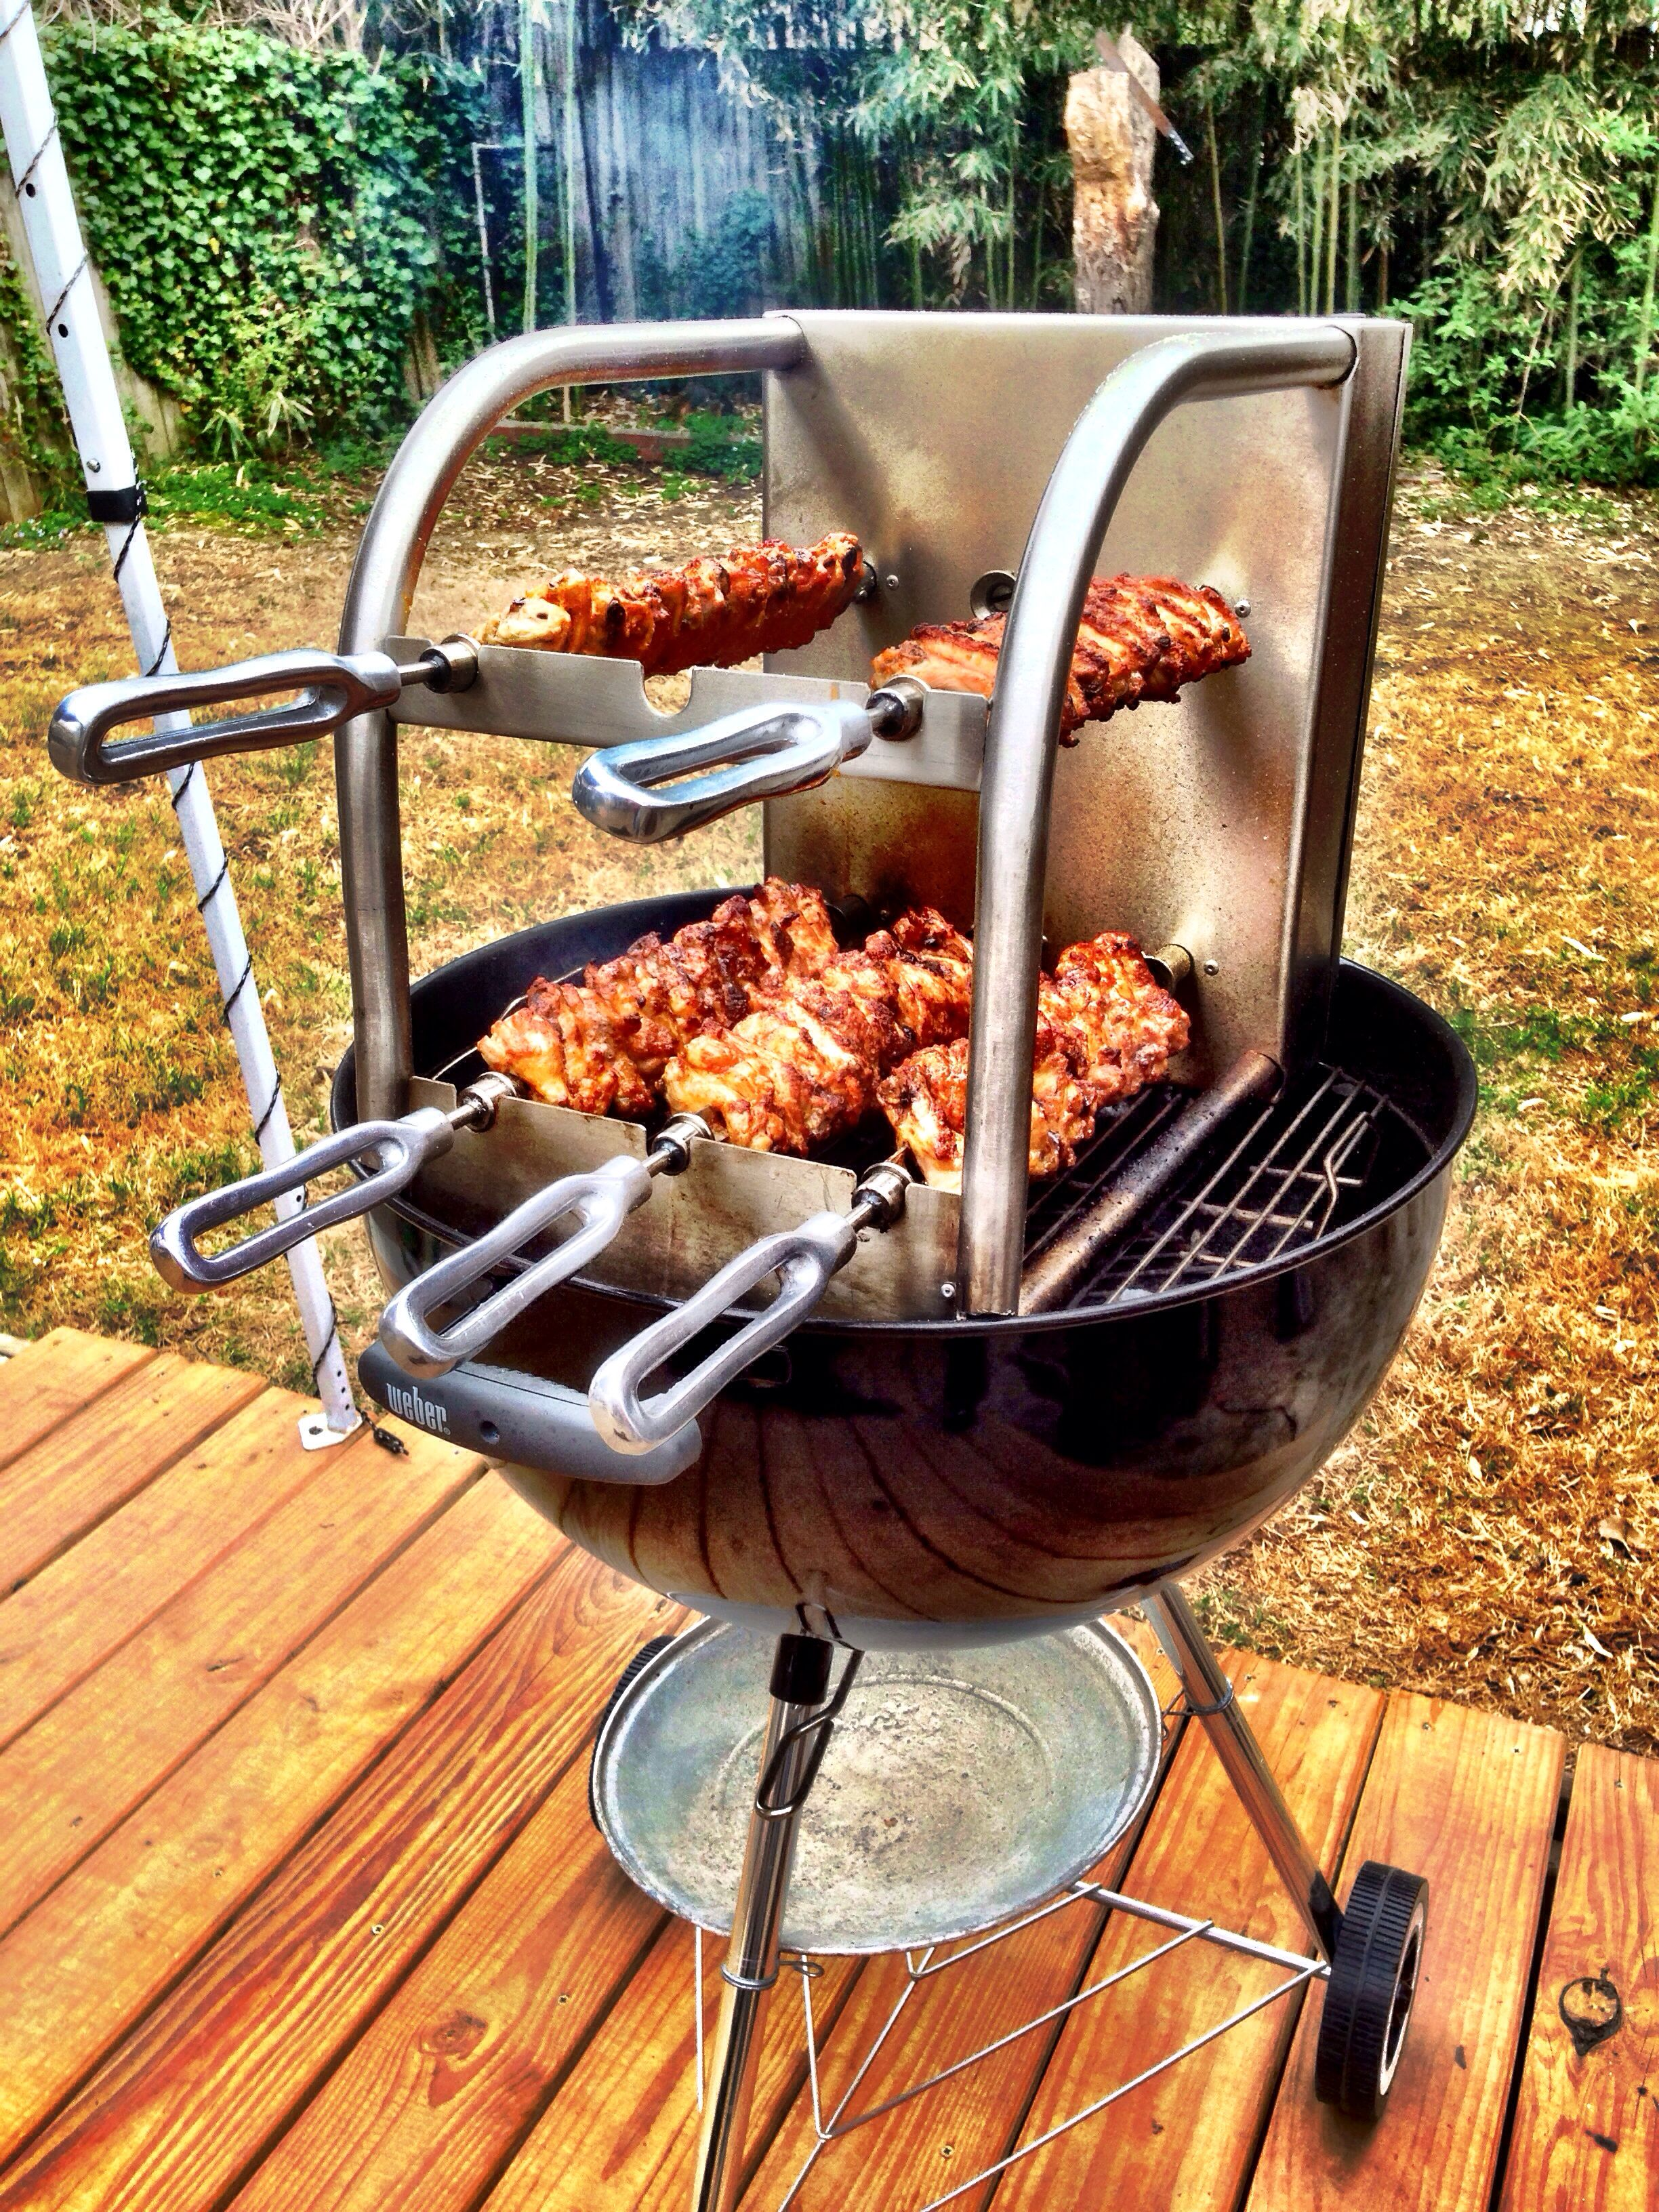 Lots Of Really Cool Grilling Gadgets And Accessories Featured On The Today Show But They Forgot Newest Coolest One